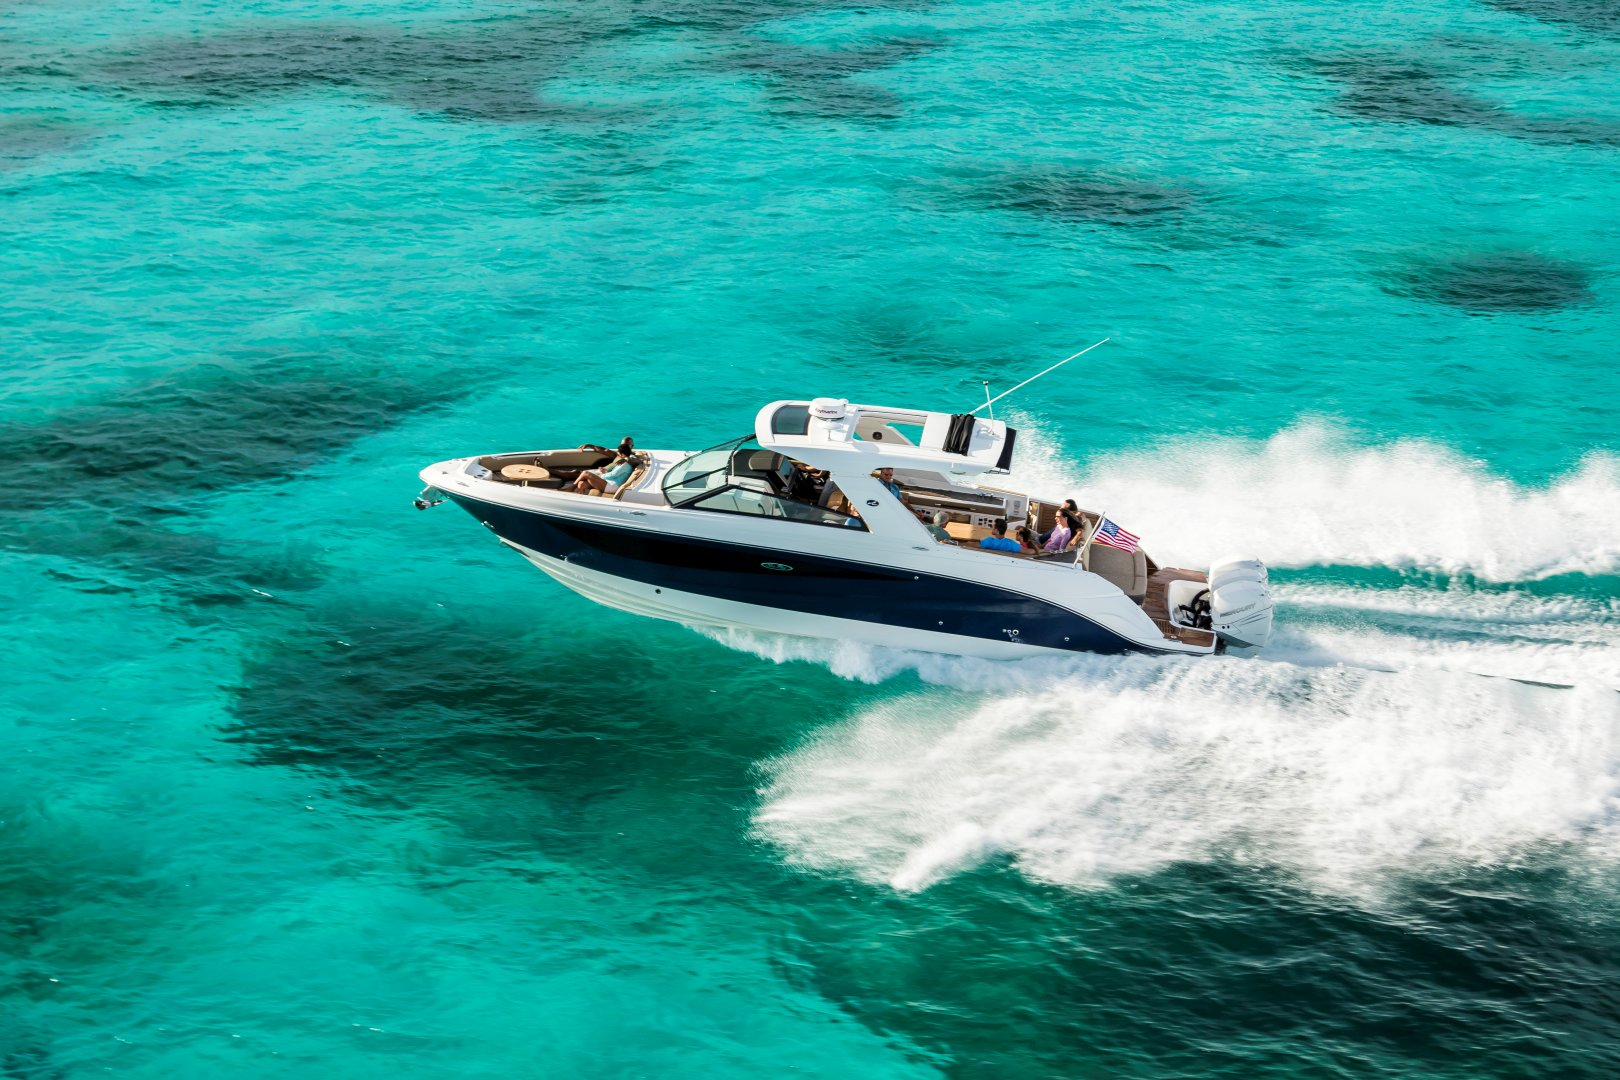 360 VR Virtual Tours of the Sea Ray SLX 400 Outboard – VRCLOUD